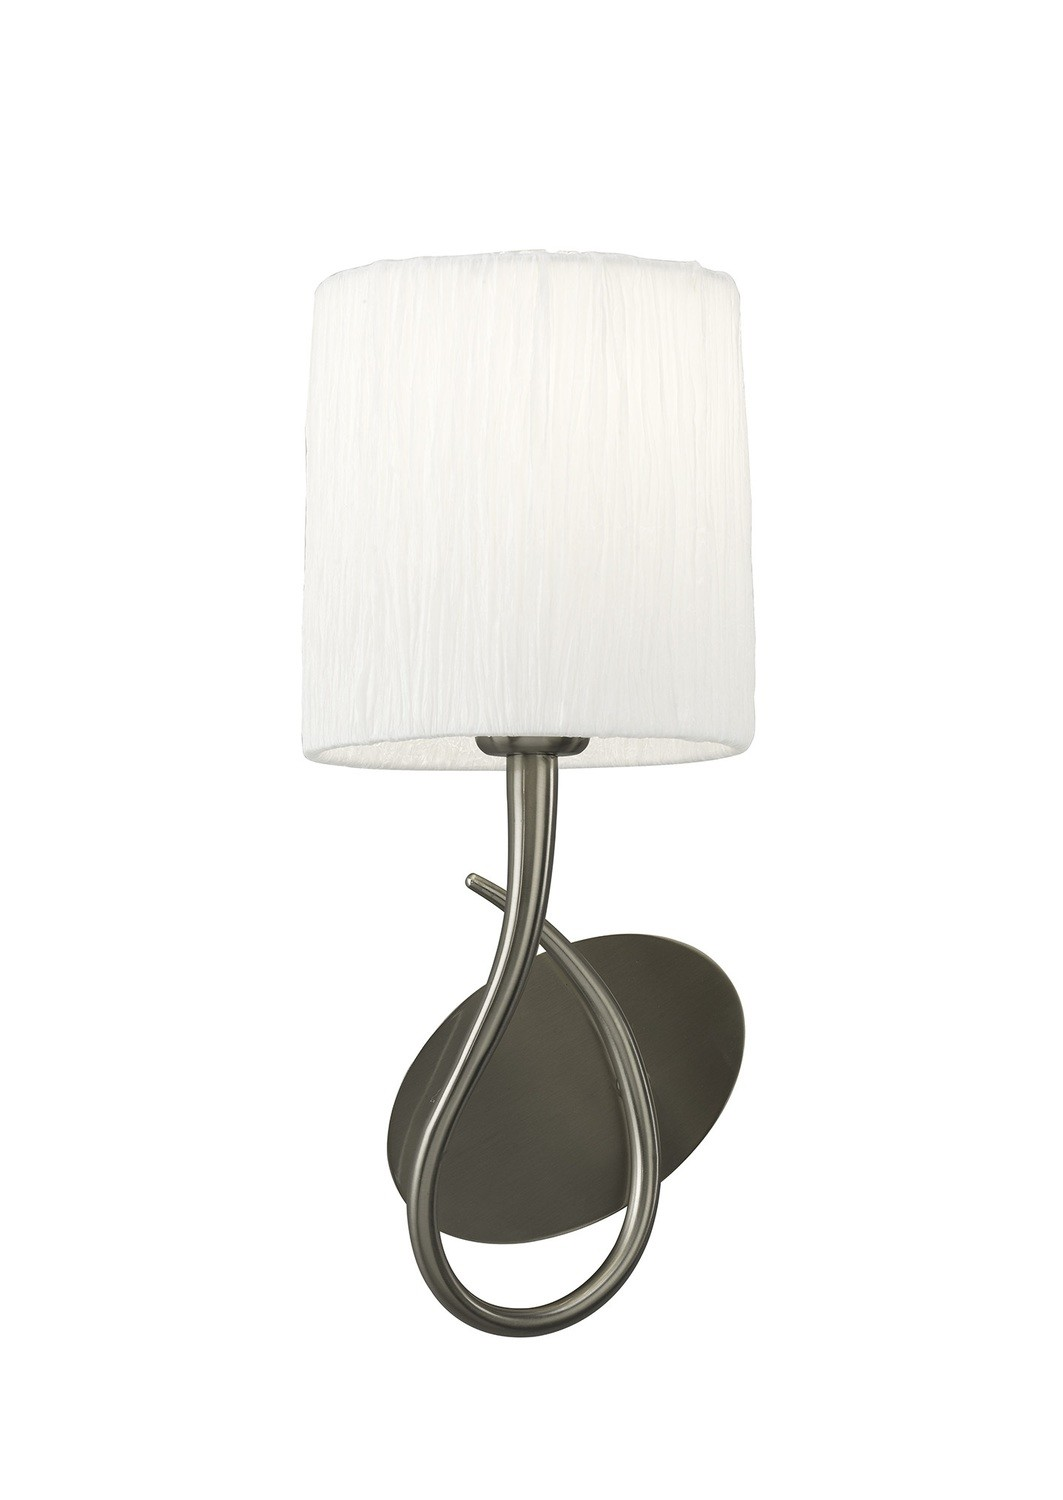 Lua Wall Lamp Switched 1 Light E27, Satin Nickel With White Shade